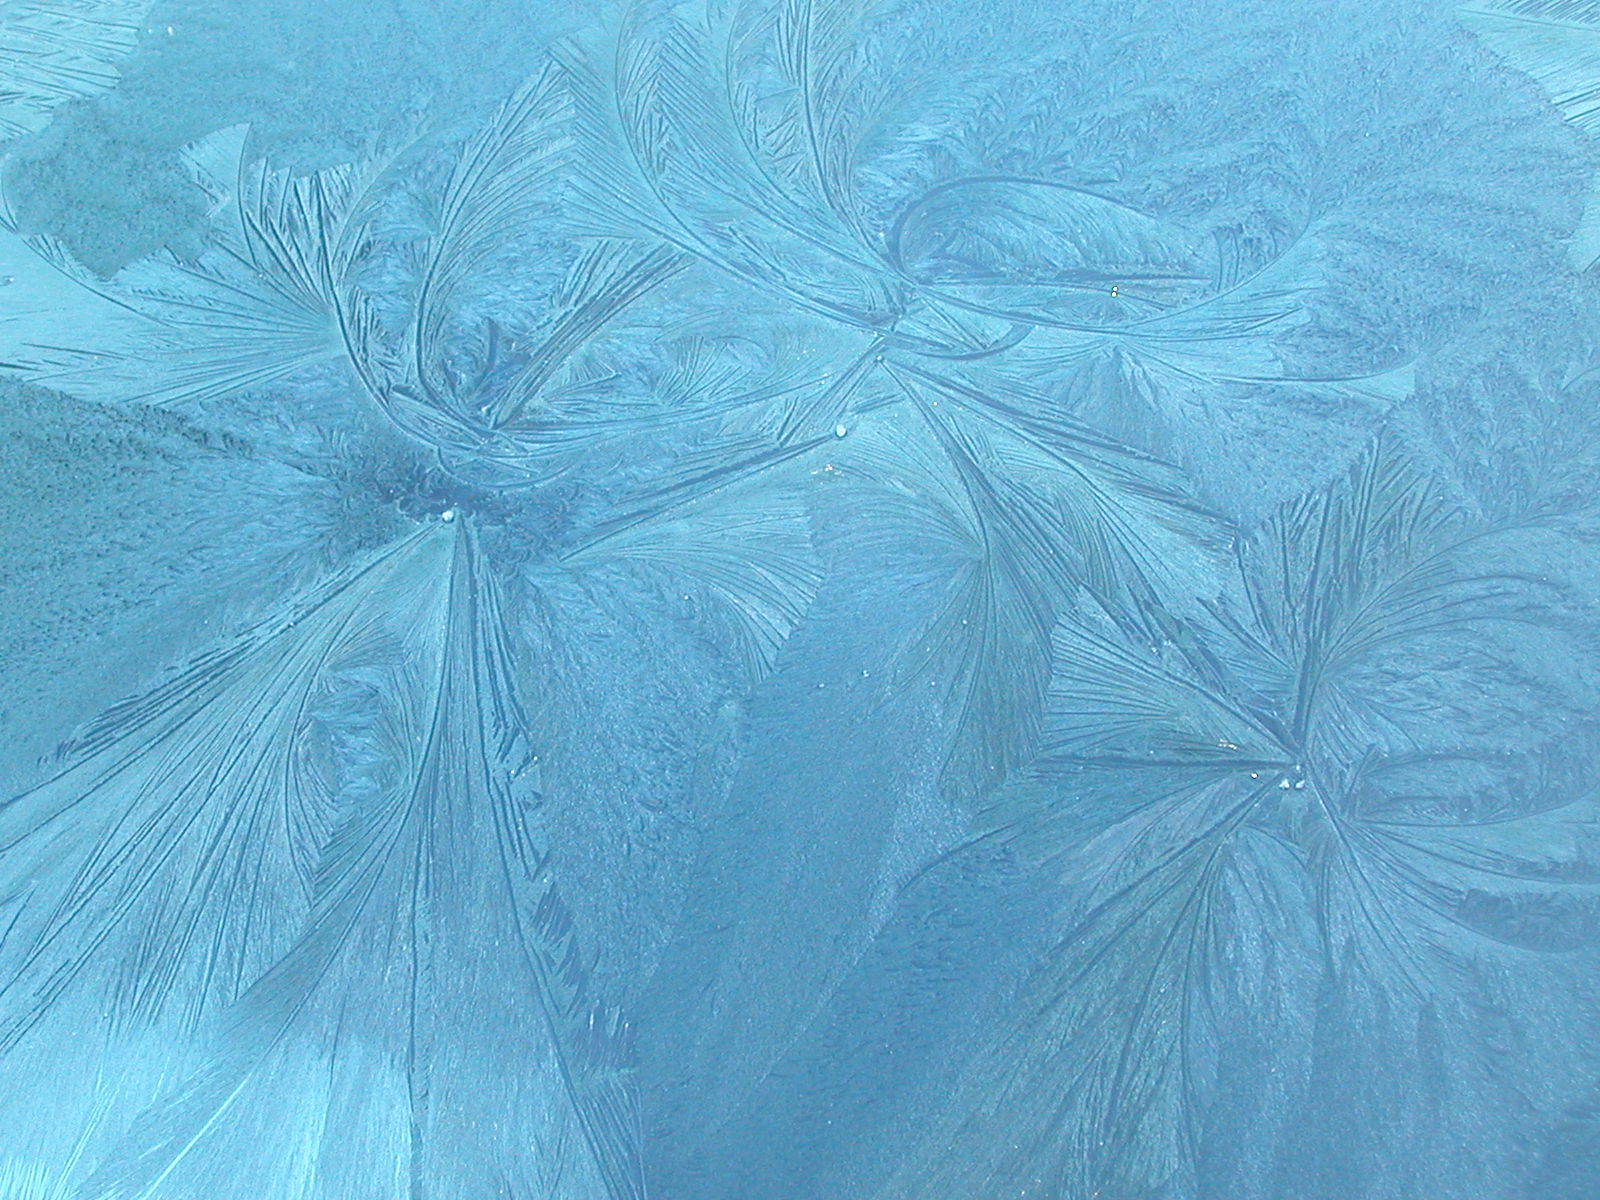 During a very cold night, the frost can make incredible patterns on glass. In the third of pictures, the sun rises just enough to begin shining through the ...